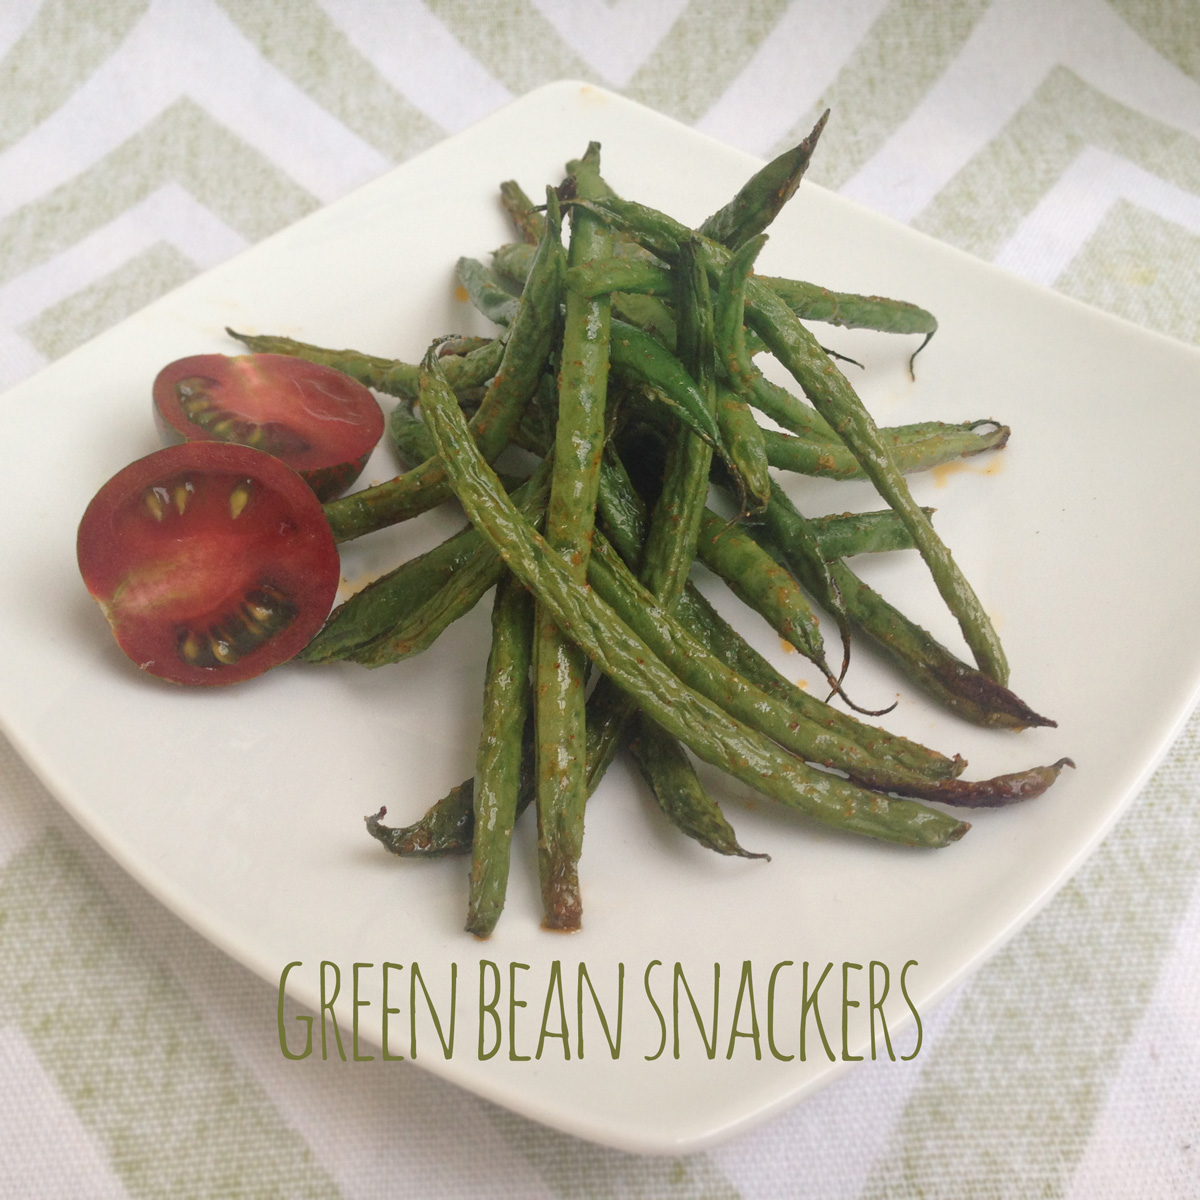 Green Bean Snackers